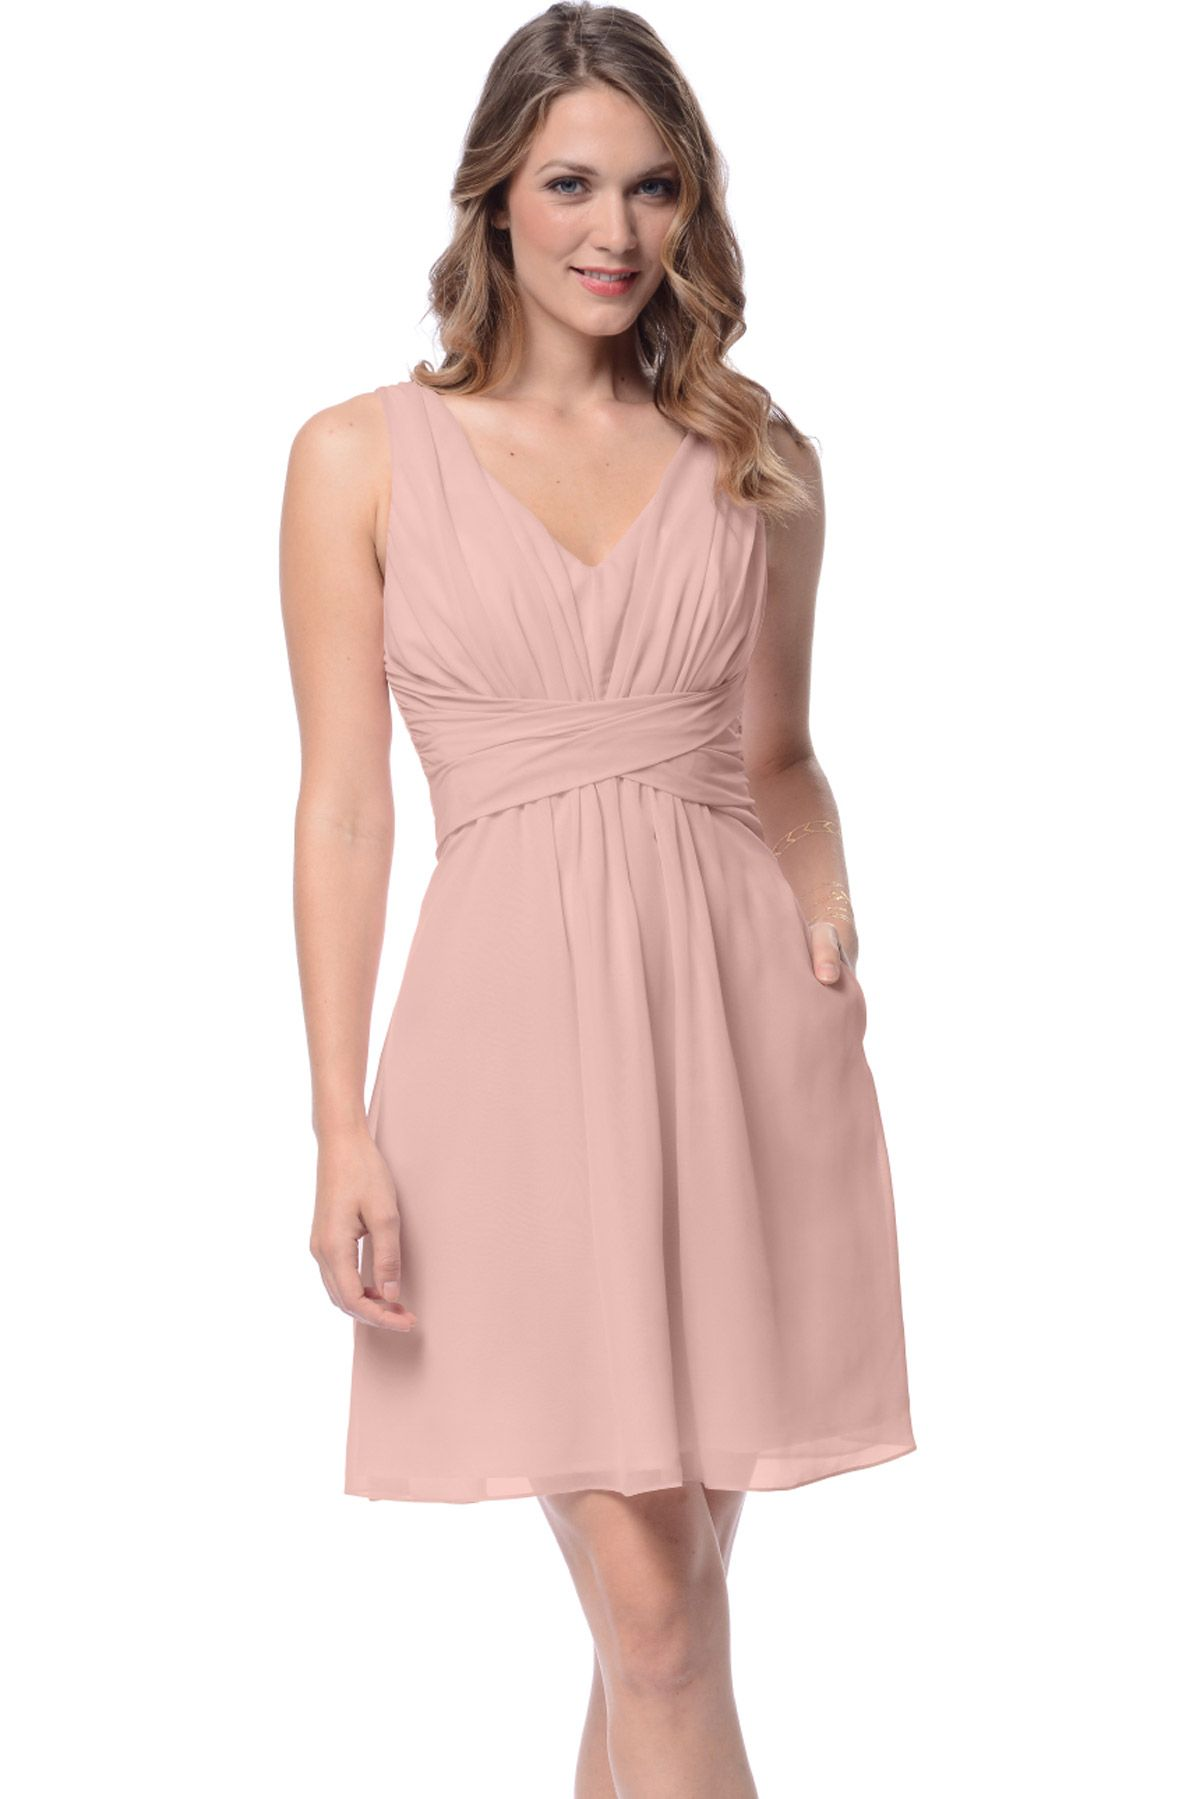 3b2bef3aee5 Shop Dove   Dahlia Bridesmaid Dress - Julia in Poly Chiffon at Weddington  Way. Find the perfect made-to-order bridesmaid dresses for your bridal  party in ...